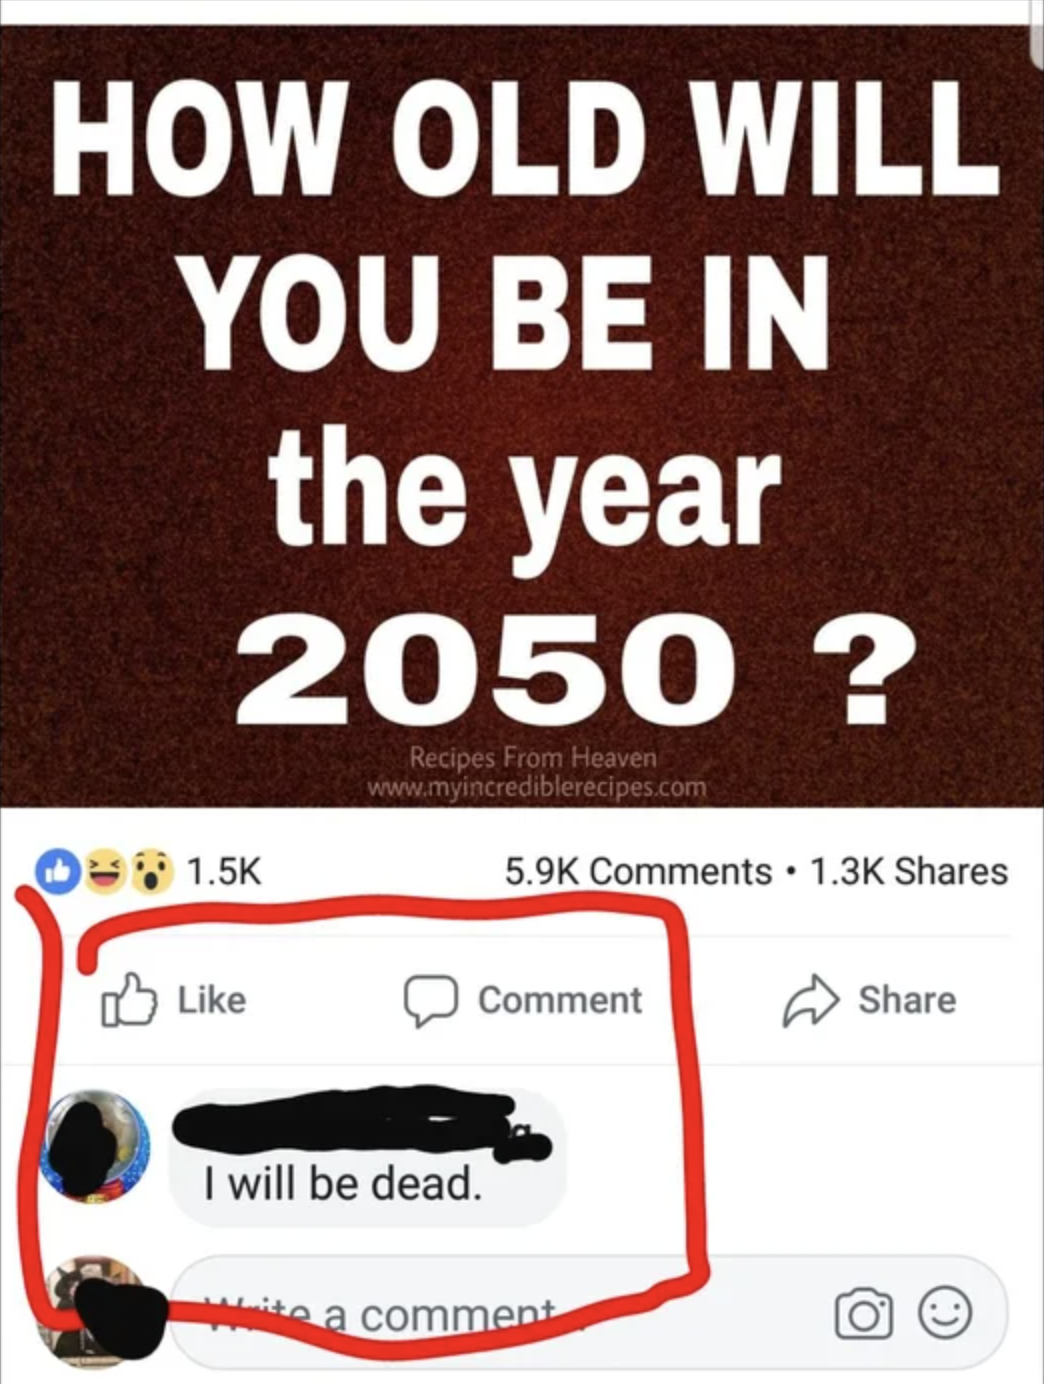 meme saying how old will you be in 2050 and someone responds i will be dead